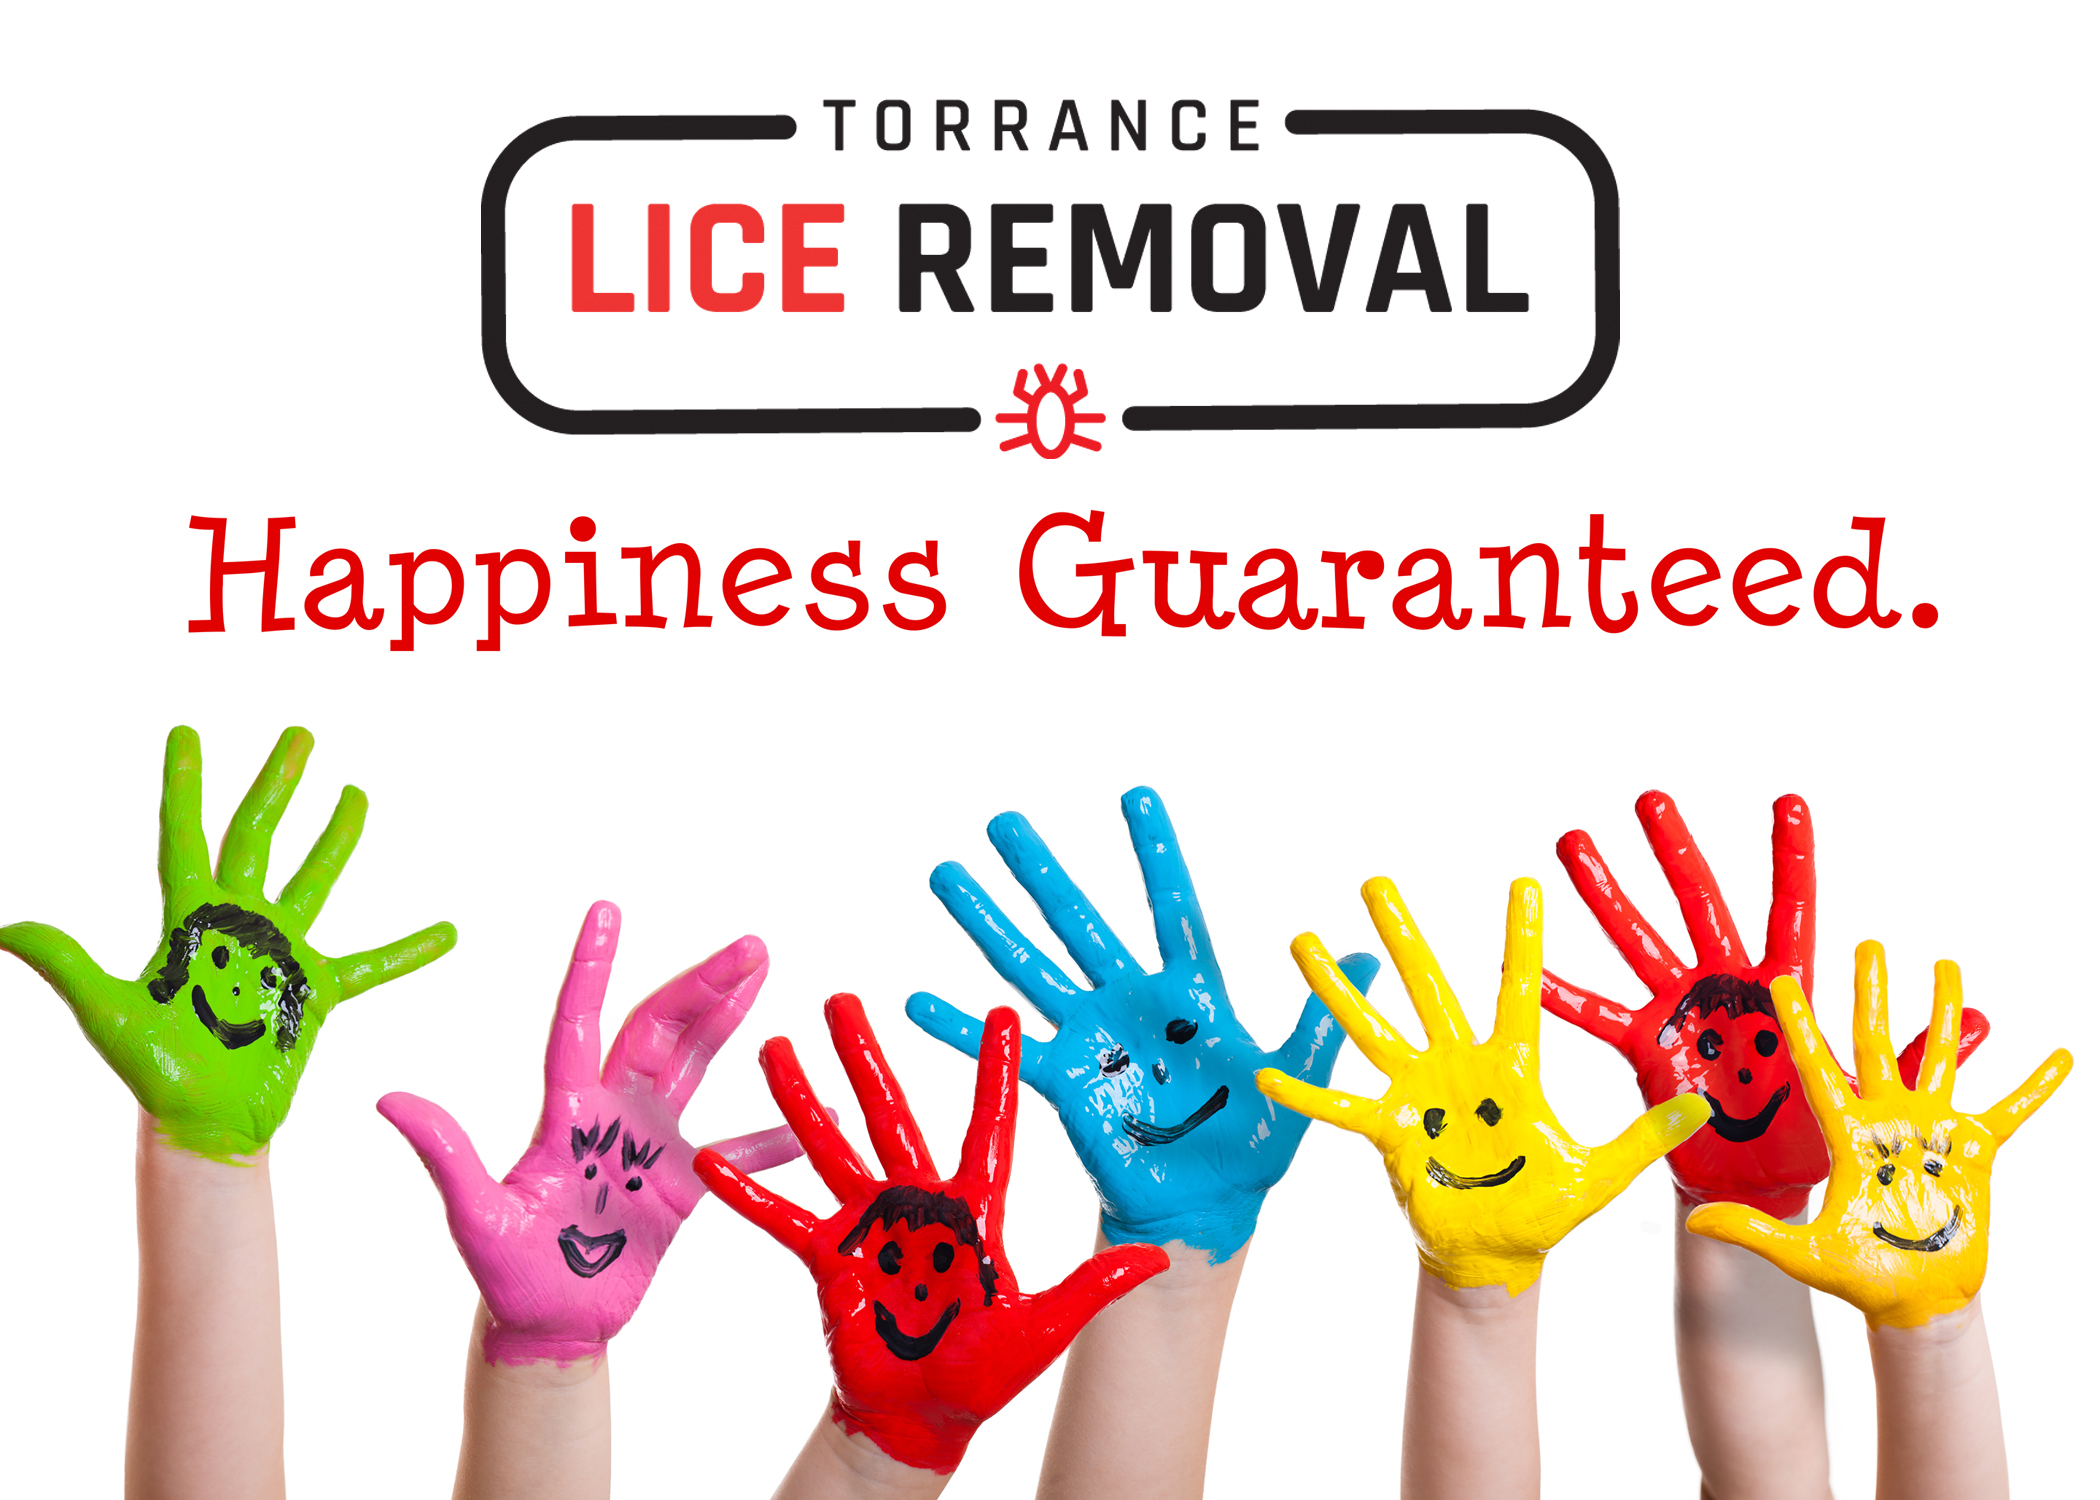 5 Lice Facts - TorranceCARD copy